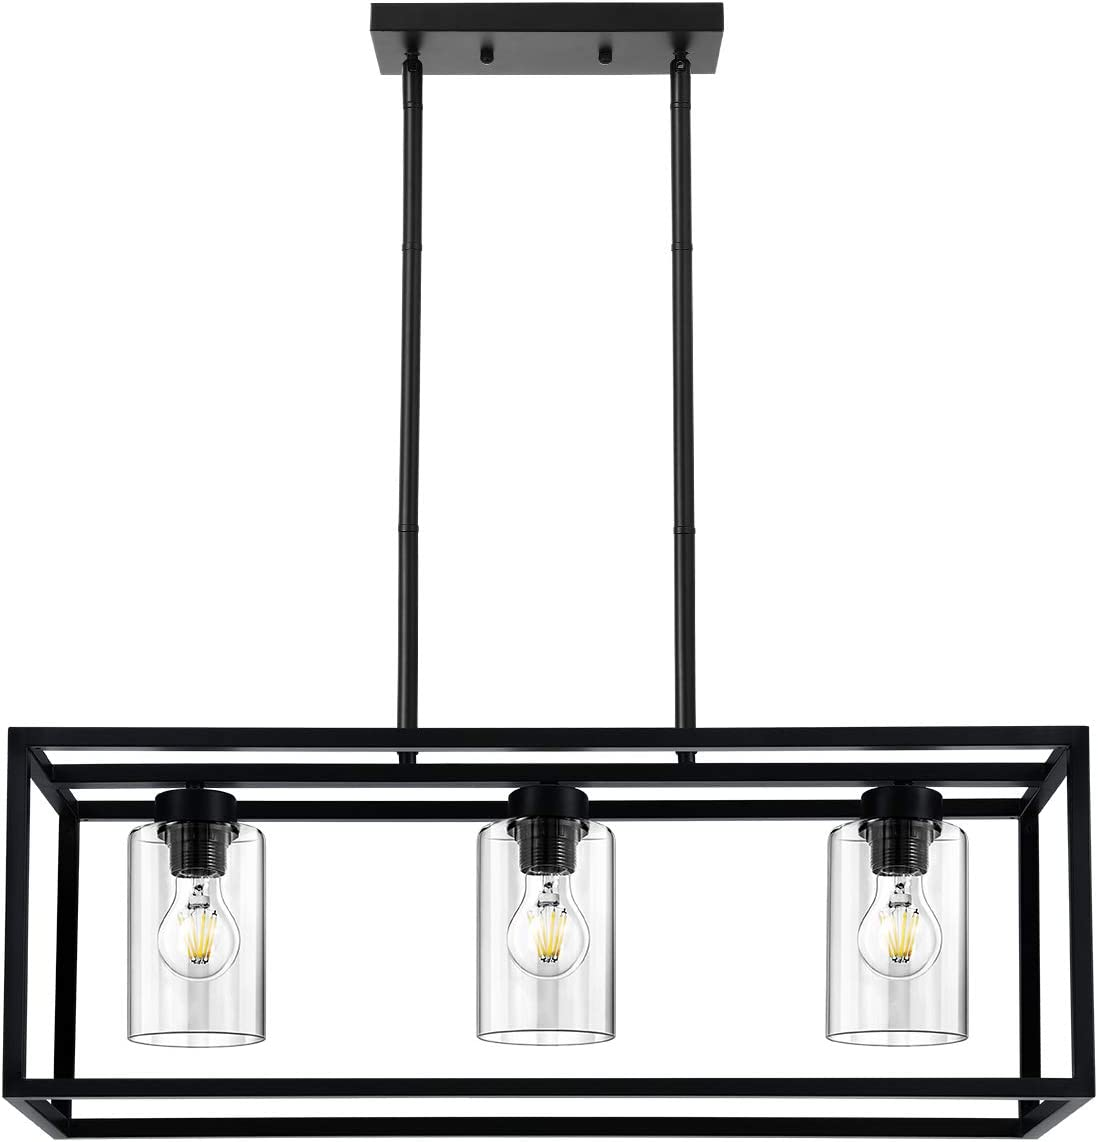 KEDSUM 3 Lights Farmhouse Kitchen Island Lights, Modern Chandeliers Rectangle Black Pendant Lighting for Dinging Room, Hanging Linear Cage Island Lighting with Clear Glass Shade and Adjustable Rods - -